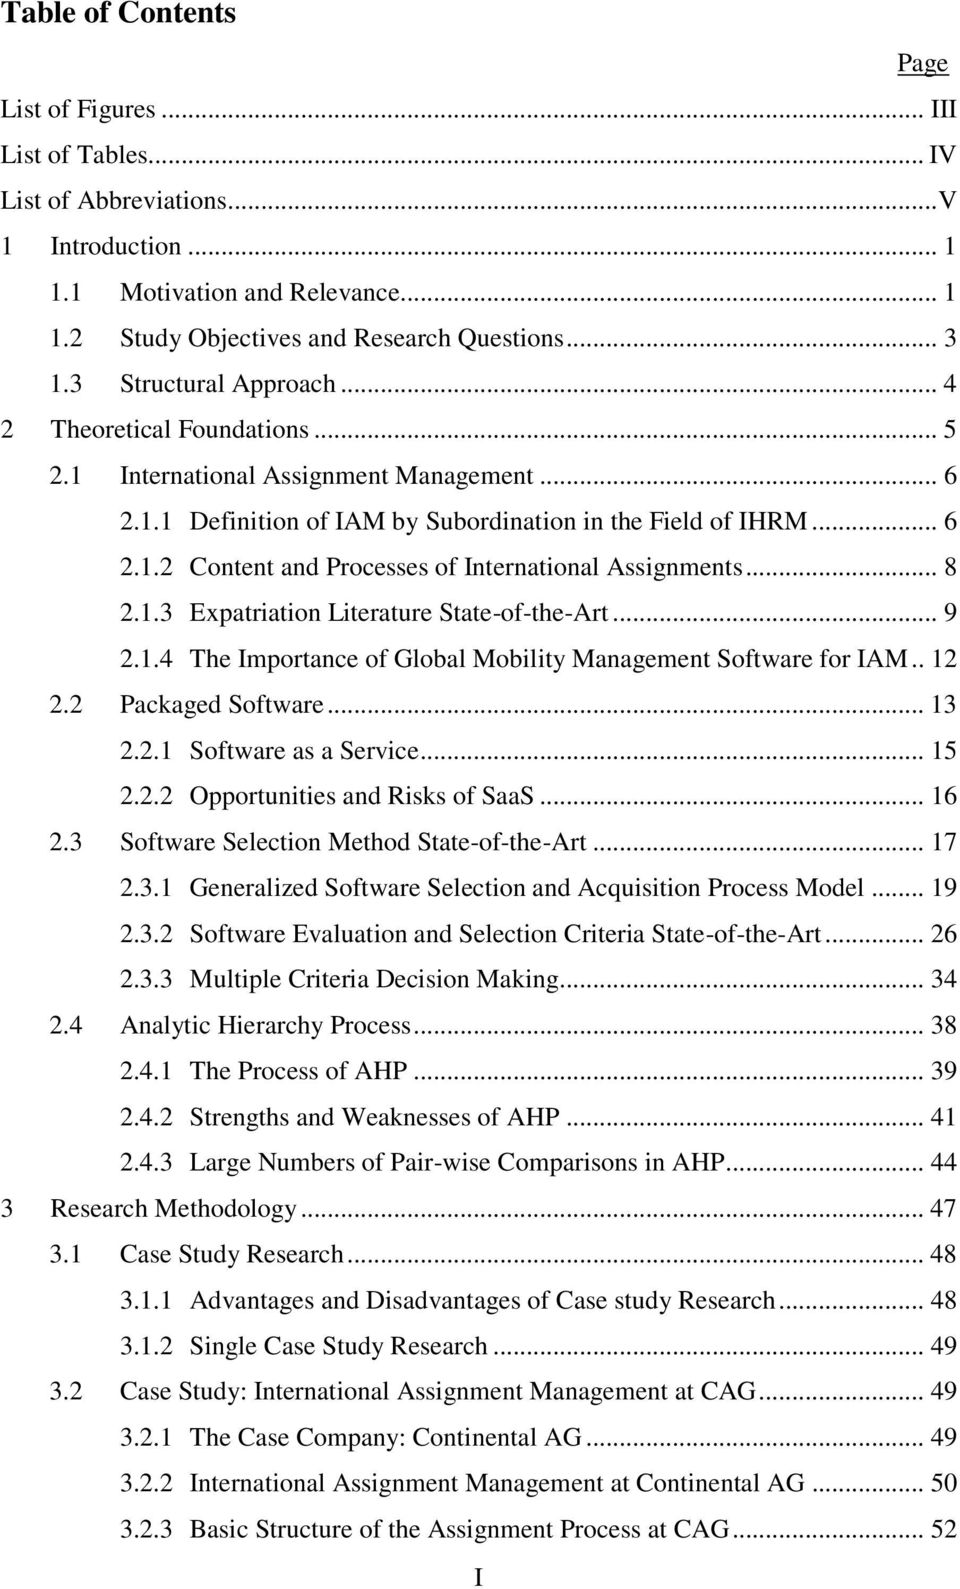 .. 8 2.1.3 Expatriation Literature State-of-the-Art... 9 2.1.4 The Importance of Global Mobility Management Software for IAM.. 12 2.2 Packaged Software... 13 2.2.1 Software as a Service... 15 2.2.2 Opportunities and Risks of SaaS.